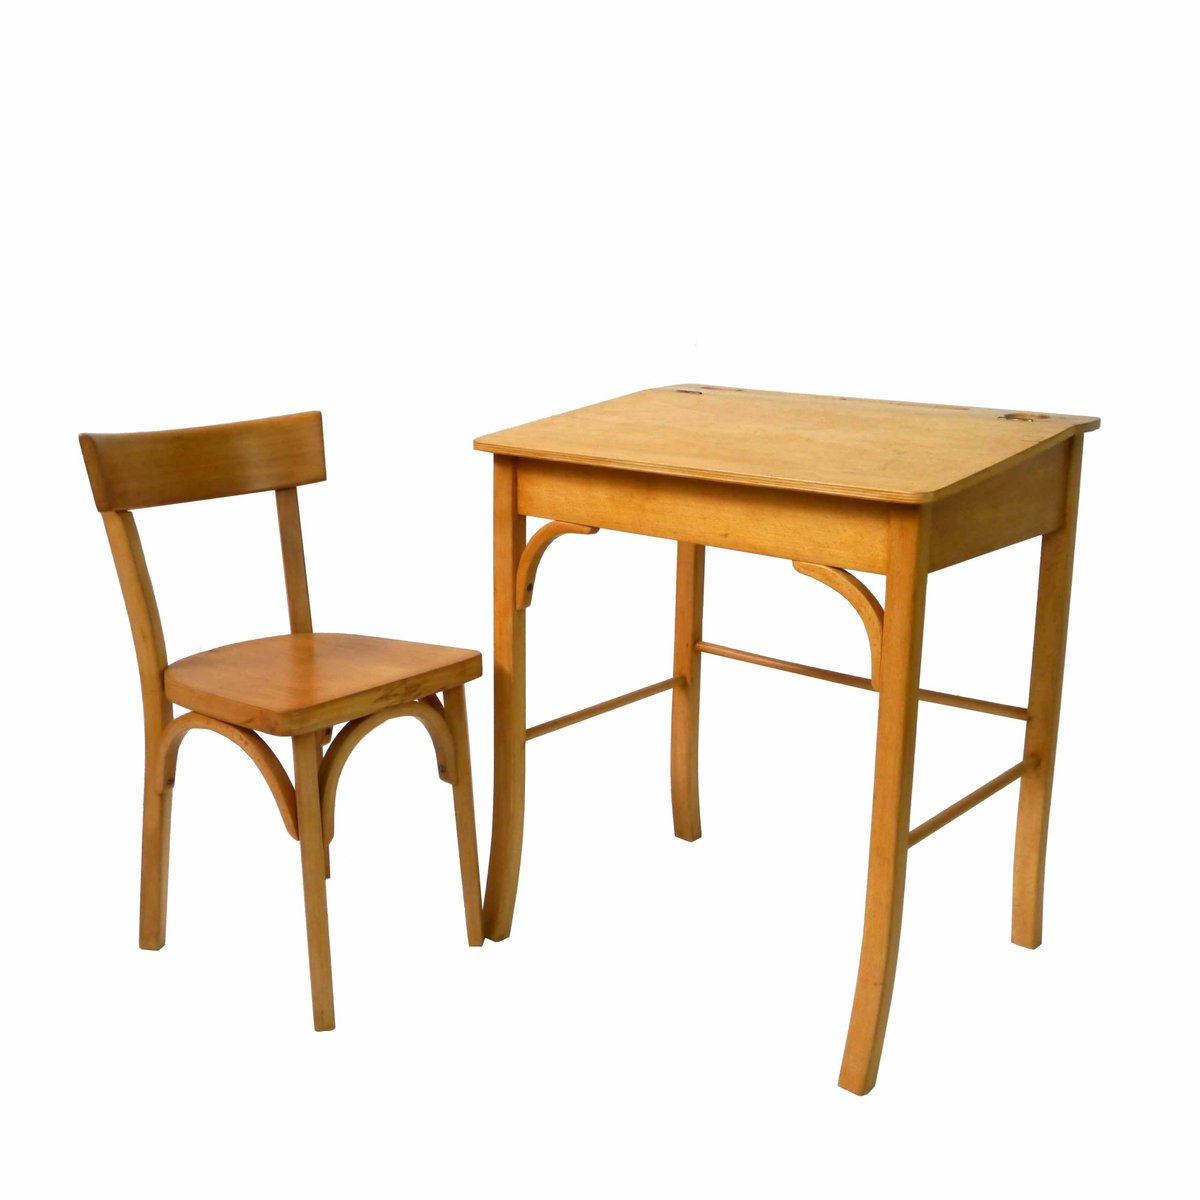 Vintage Wooden Children s Desk and Chair for sale at Pamono